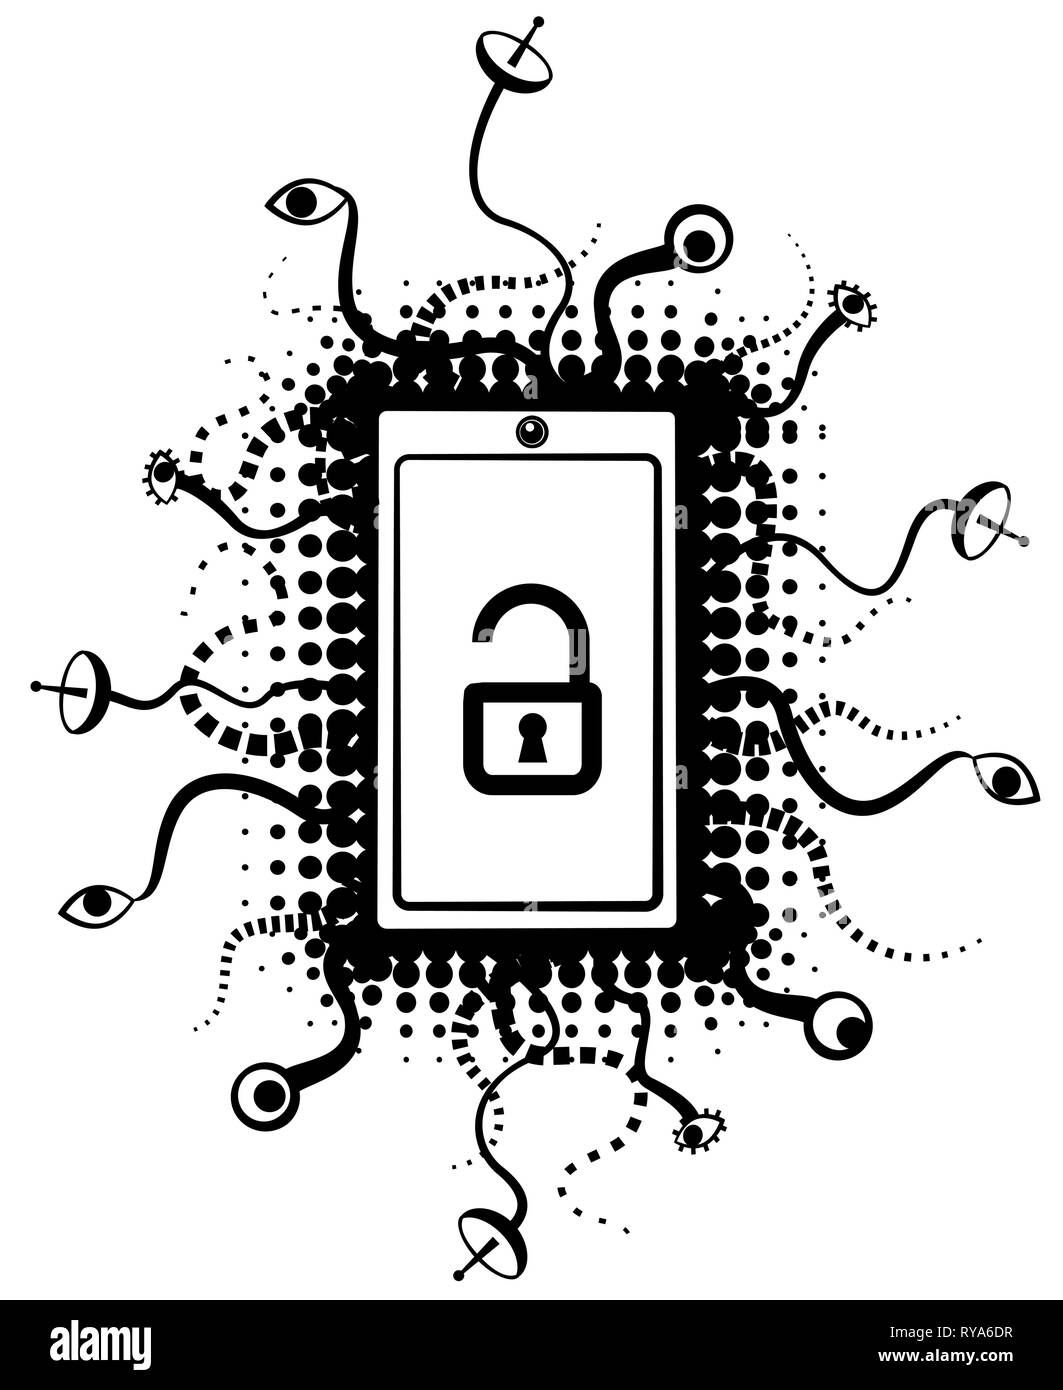 Smart phone surveillance abstract symbol stencil black design, vector illustration, vertical, over white, isolated - Stock Vector